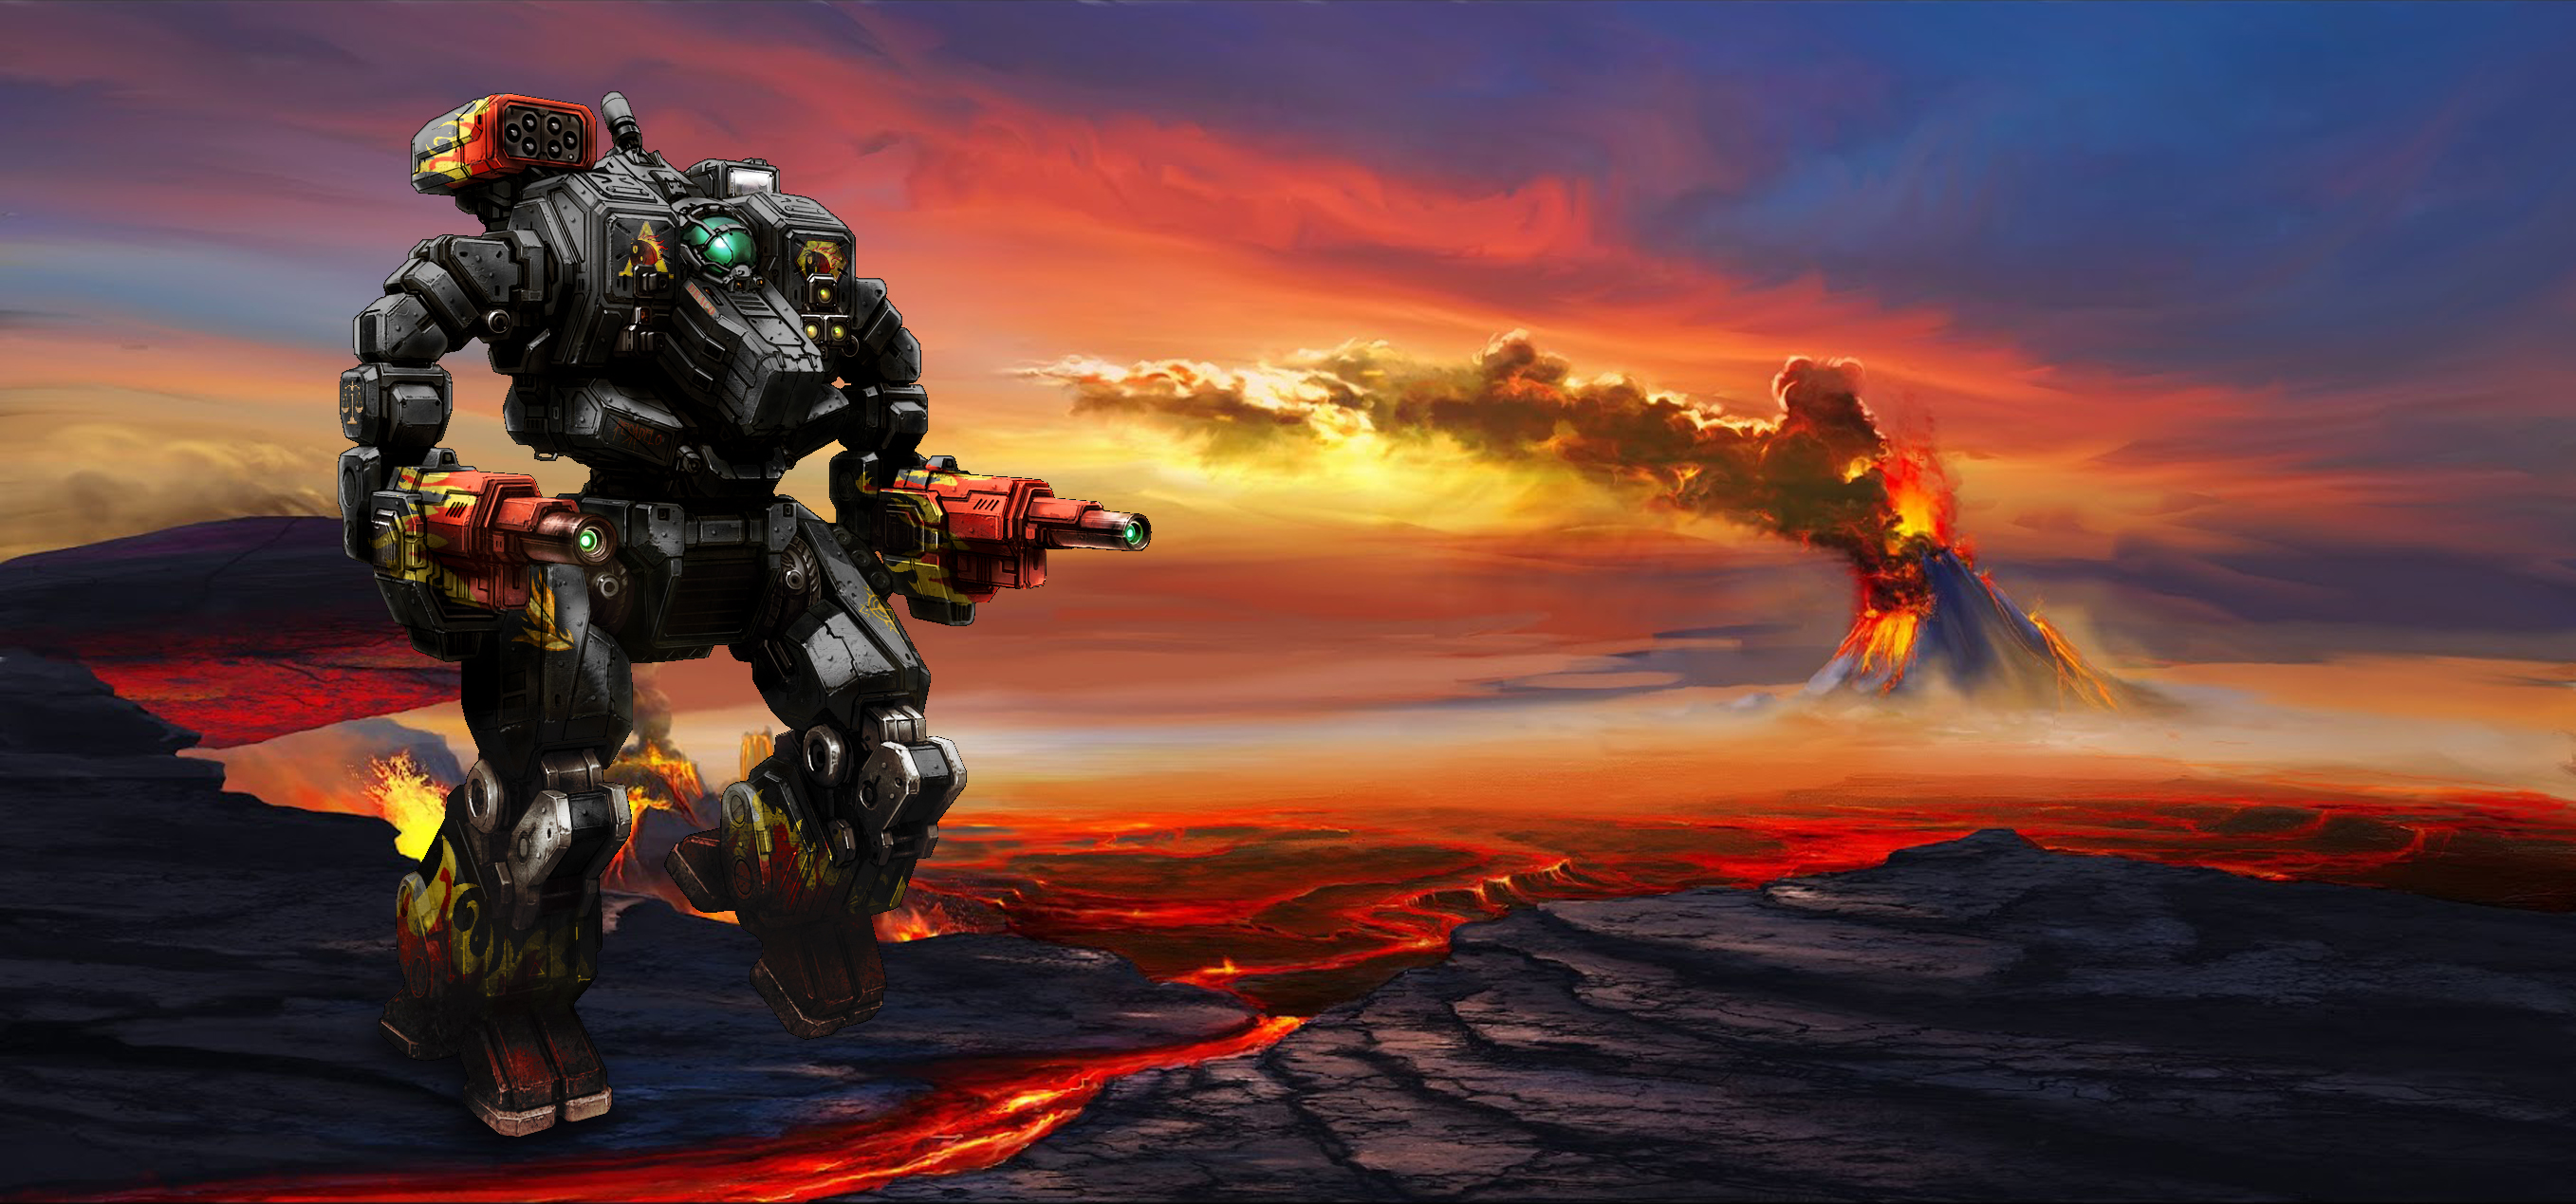 MWO Hellbringer Loki wallpaper by Odanan 2715x1269